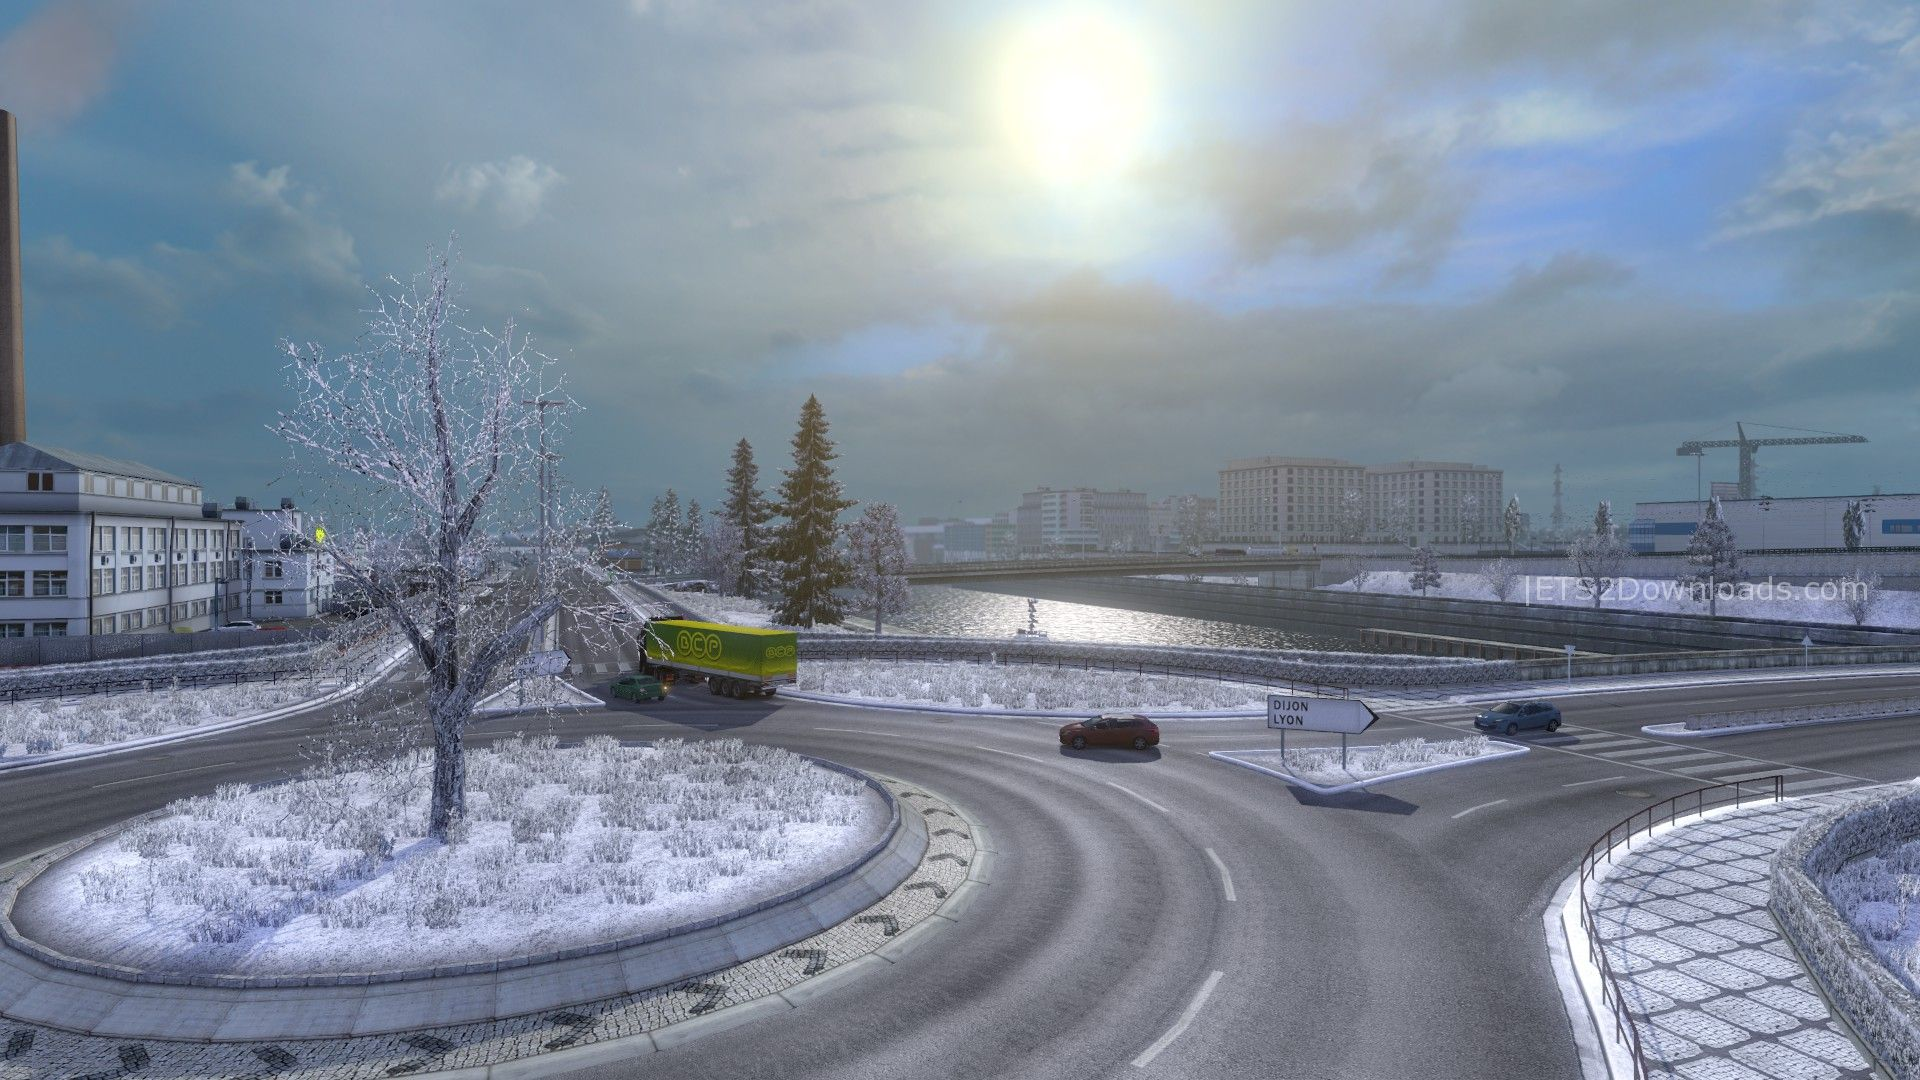 frosty-lateearly-winter-weather-mod-2